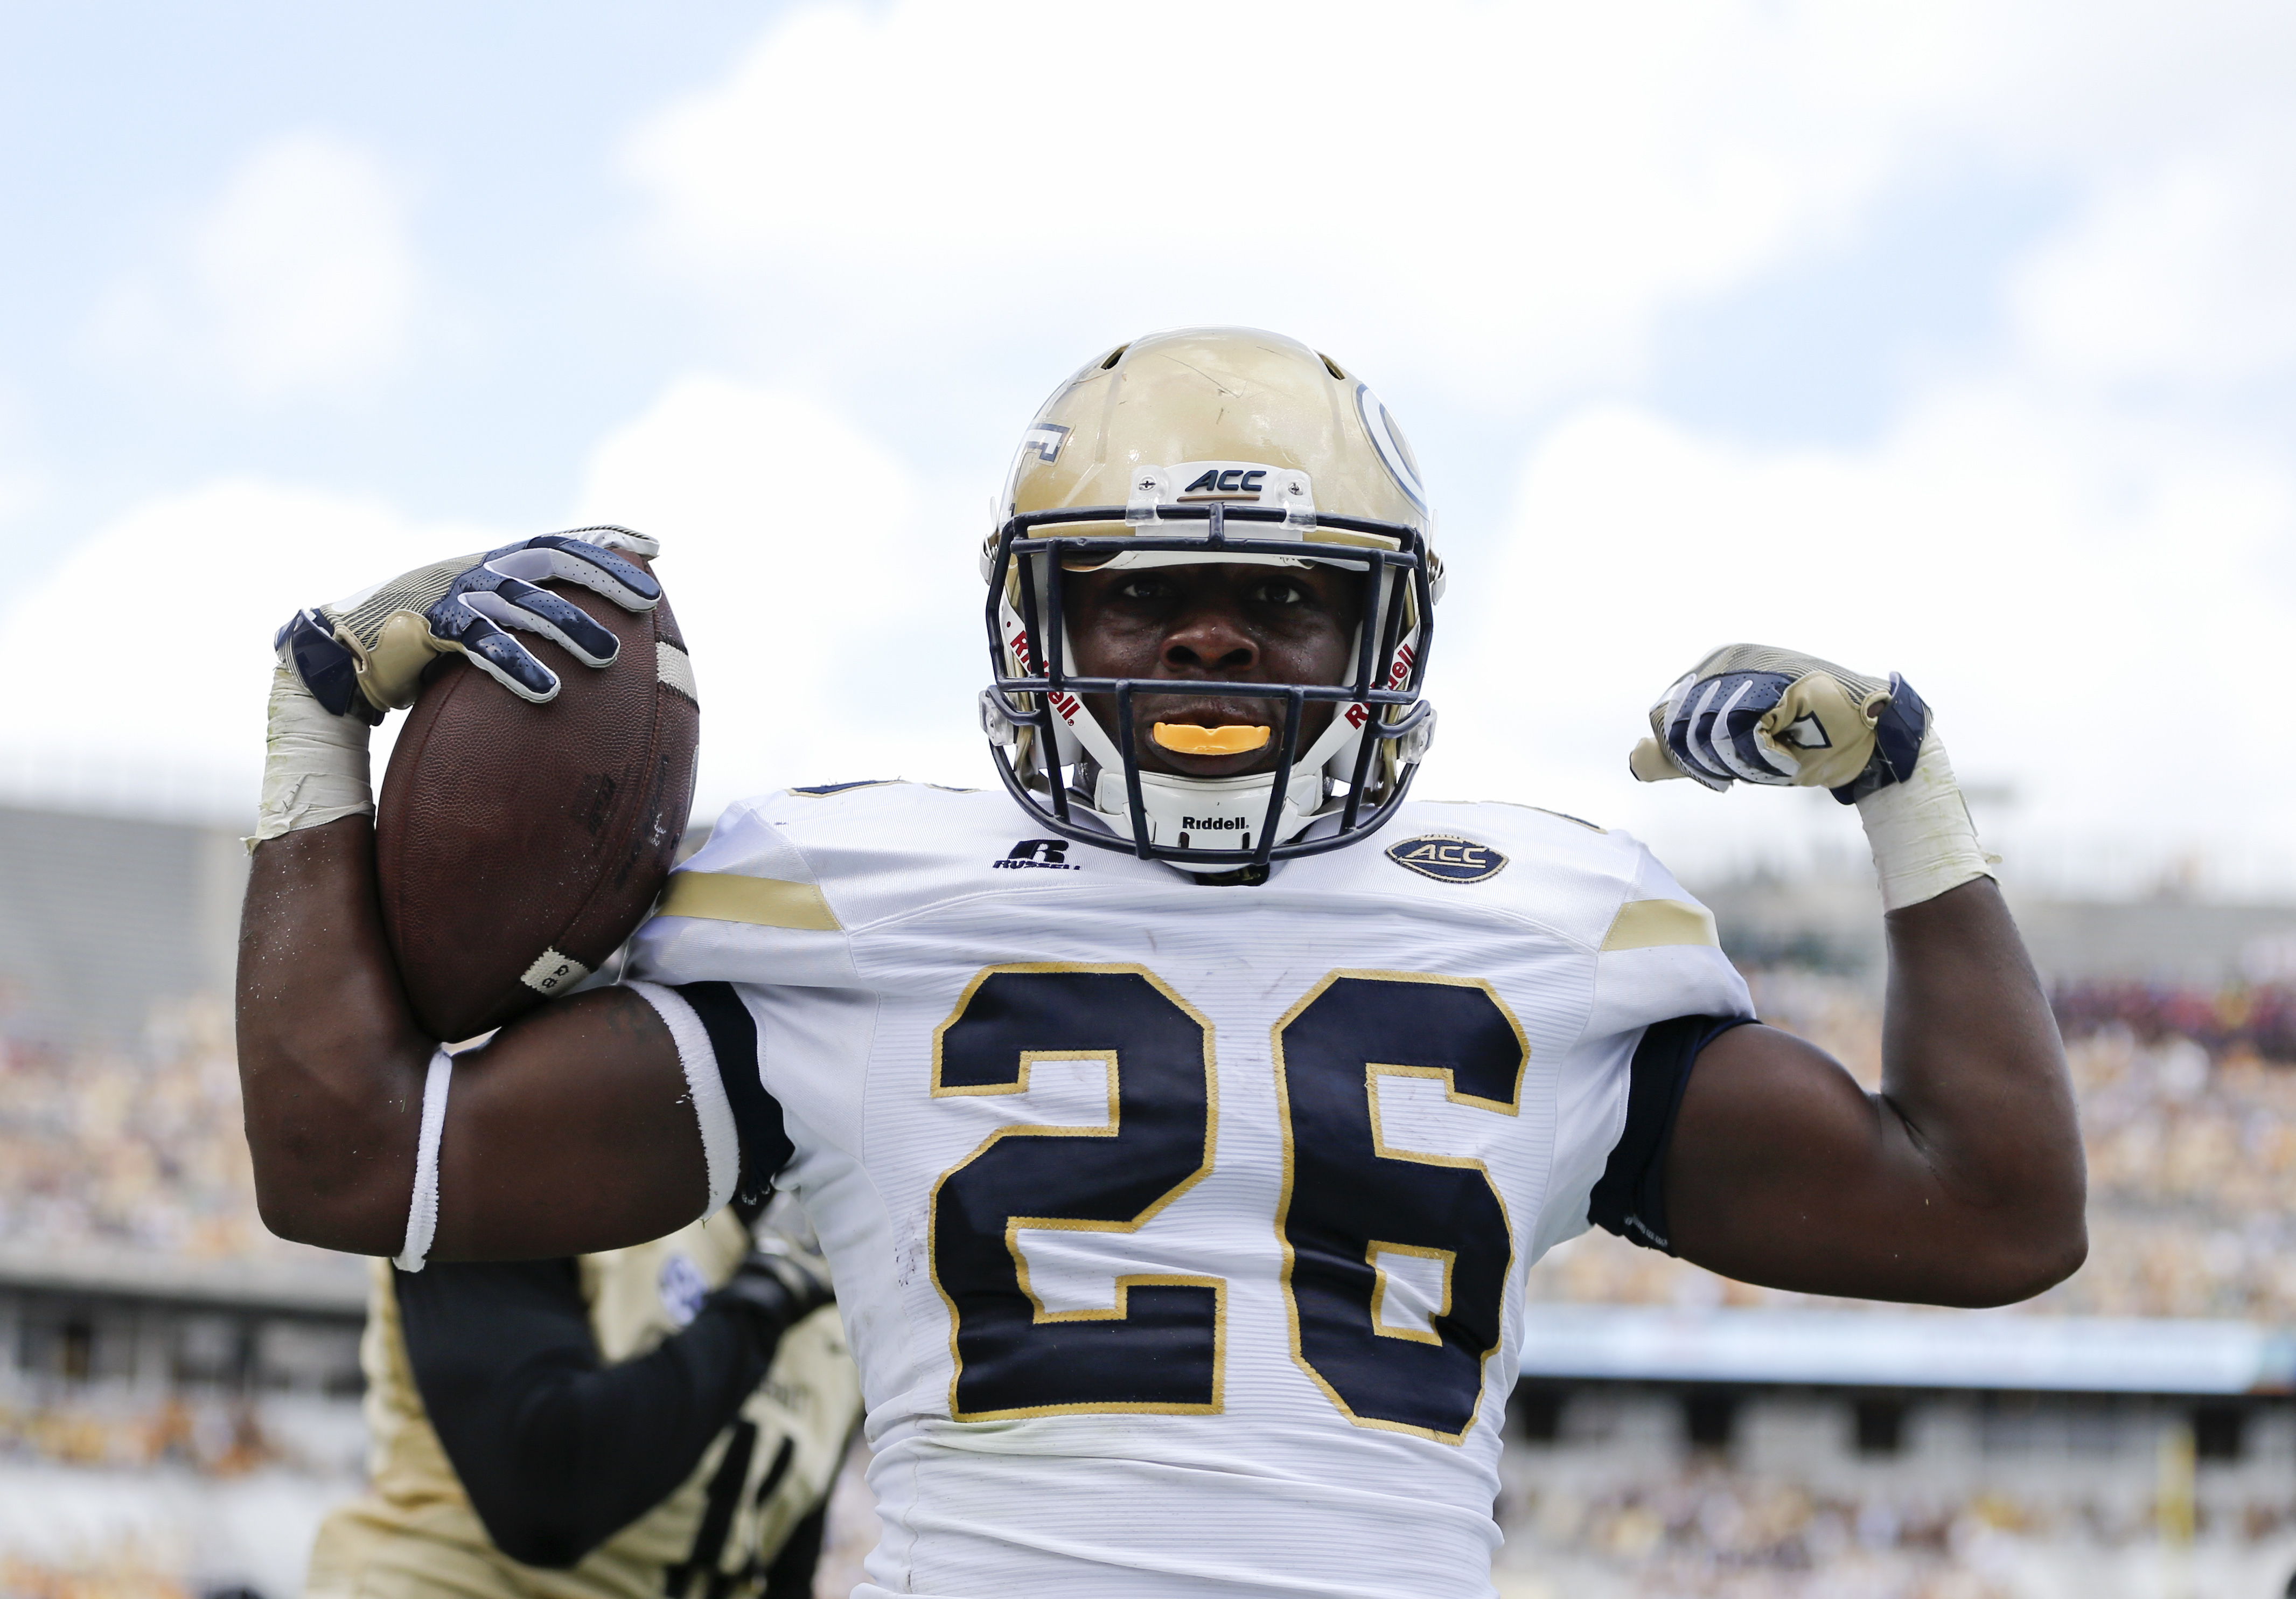 FILE- This Sept. 17, 2016, file photo shows Georgia Tech running back Dedrick Mills (26) celebrating after rushing for a touchdown in the first half of an NCAA college football game against Vanderbilt in Atlanta. Mills' freshman season for Georgia Tech wa